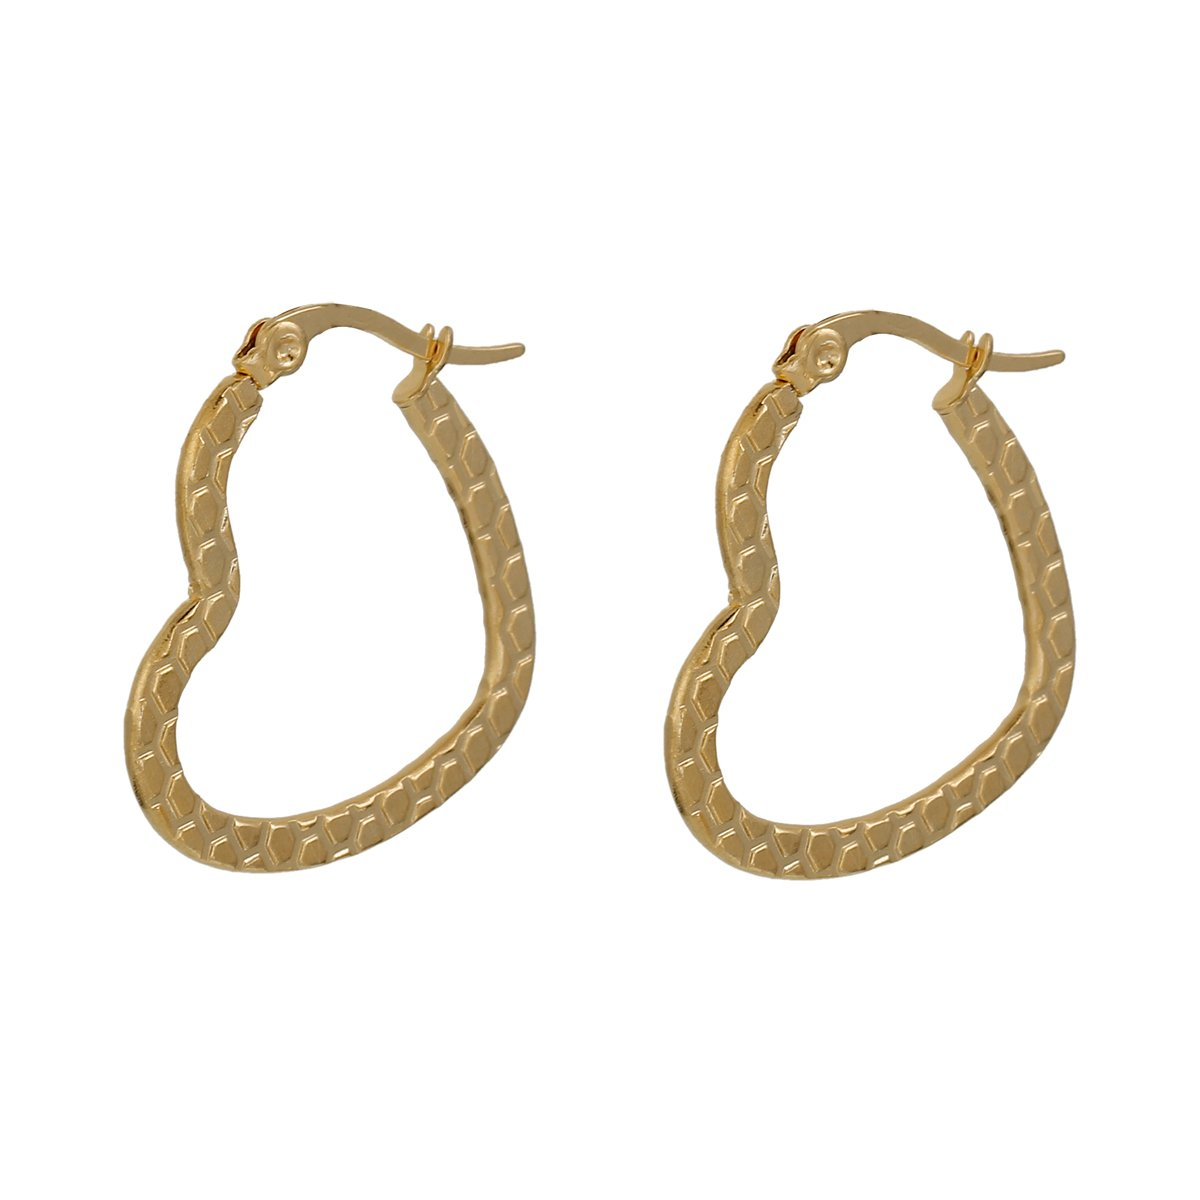 Textured Gold Heart Hoop Earrings